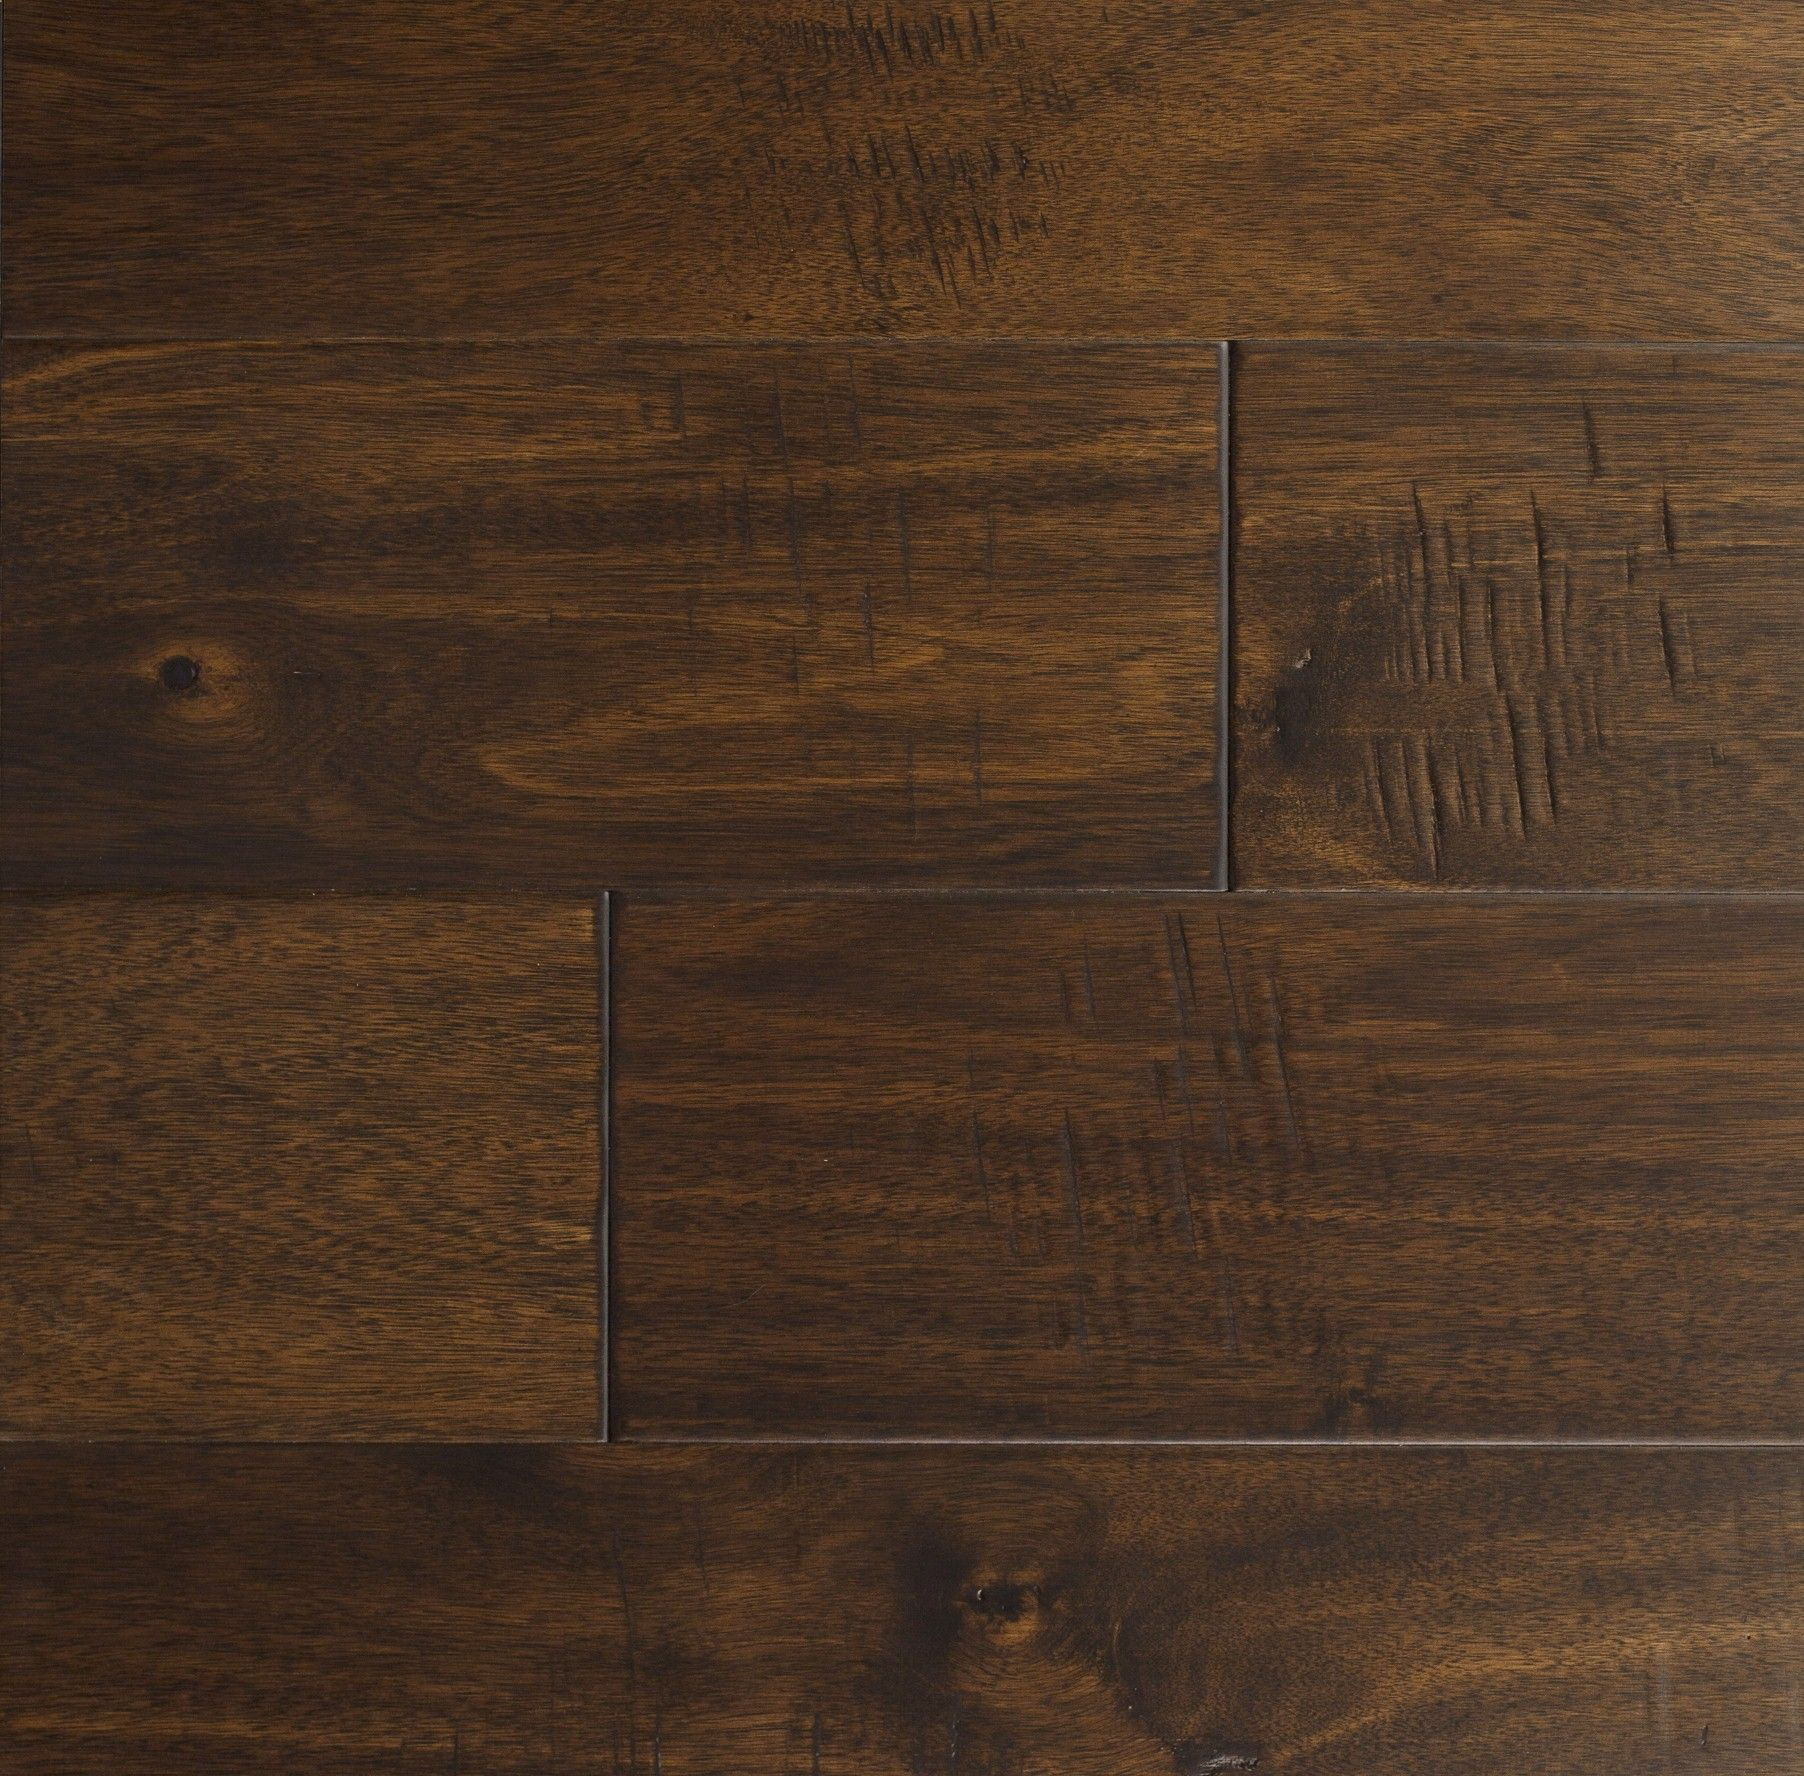 Dark Walnut Hardwood Floors 9anbcvoo Vanke Executive